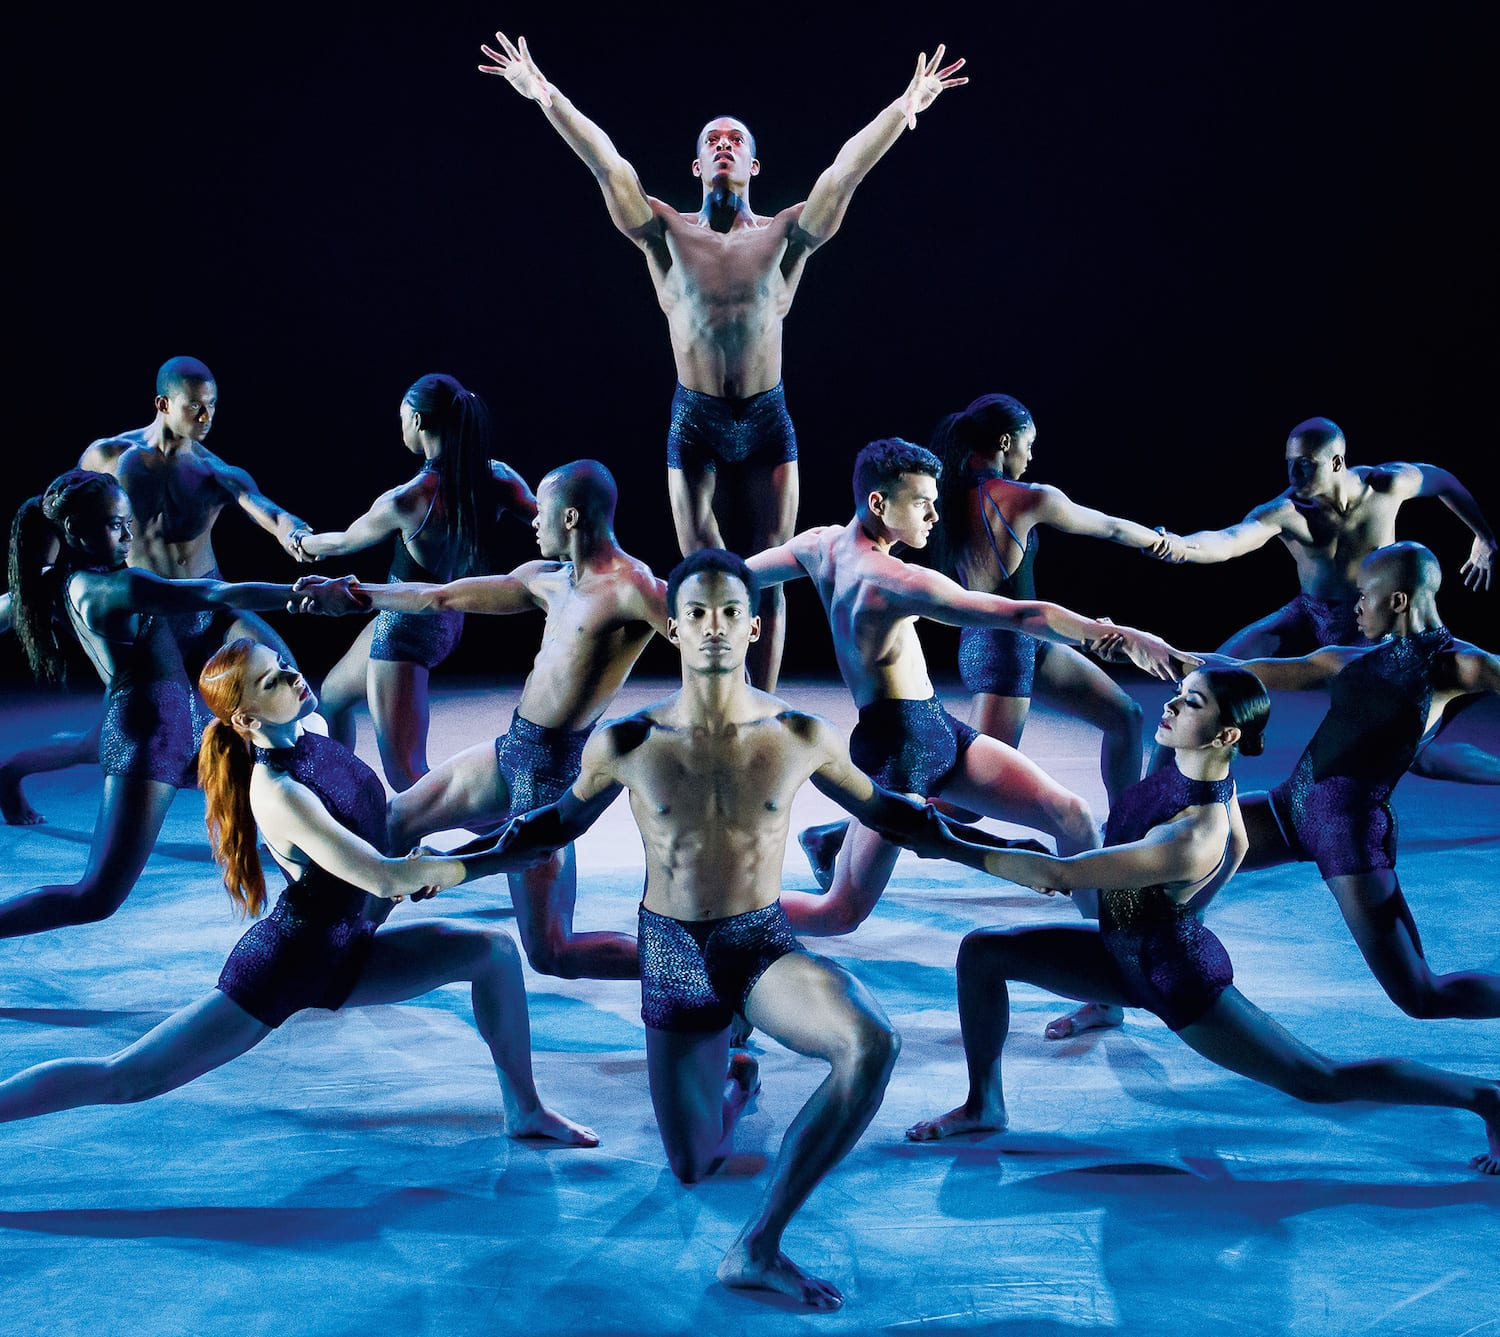 dancers of Ailey II